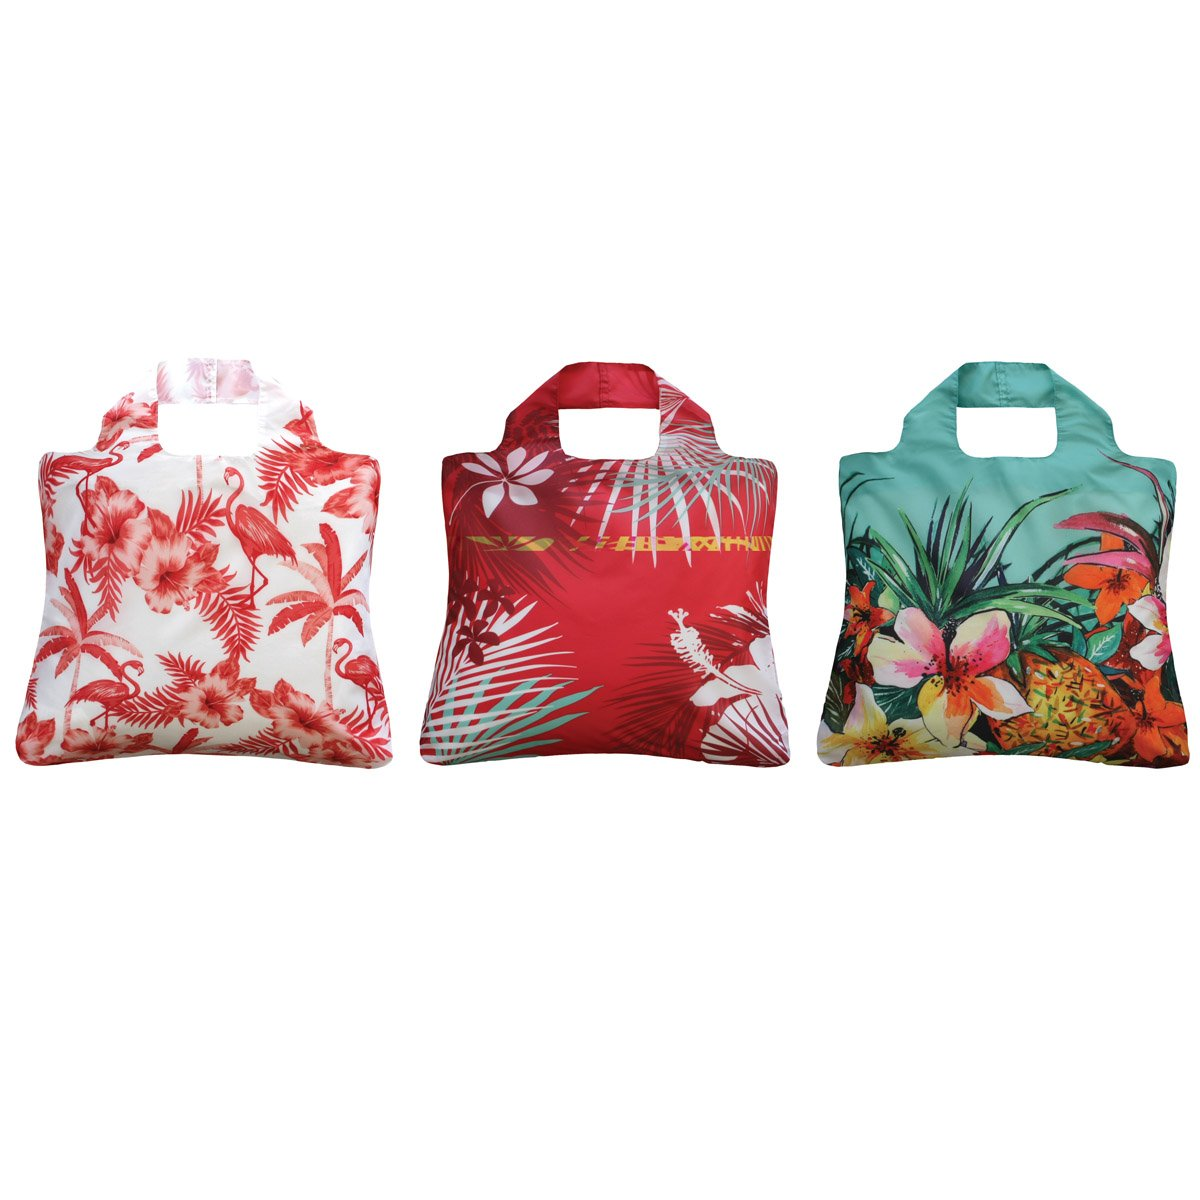 Envirosax Tropics Reusable Shopping Bags, Tropical Garden (Set of 3)